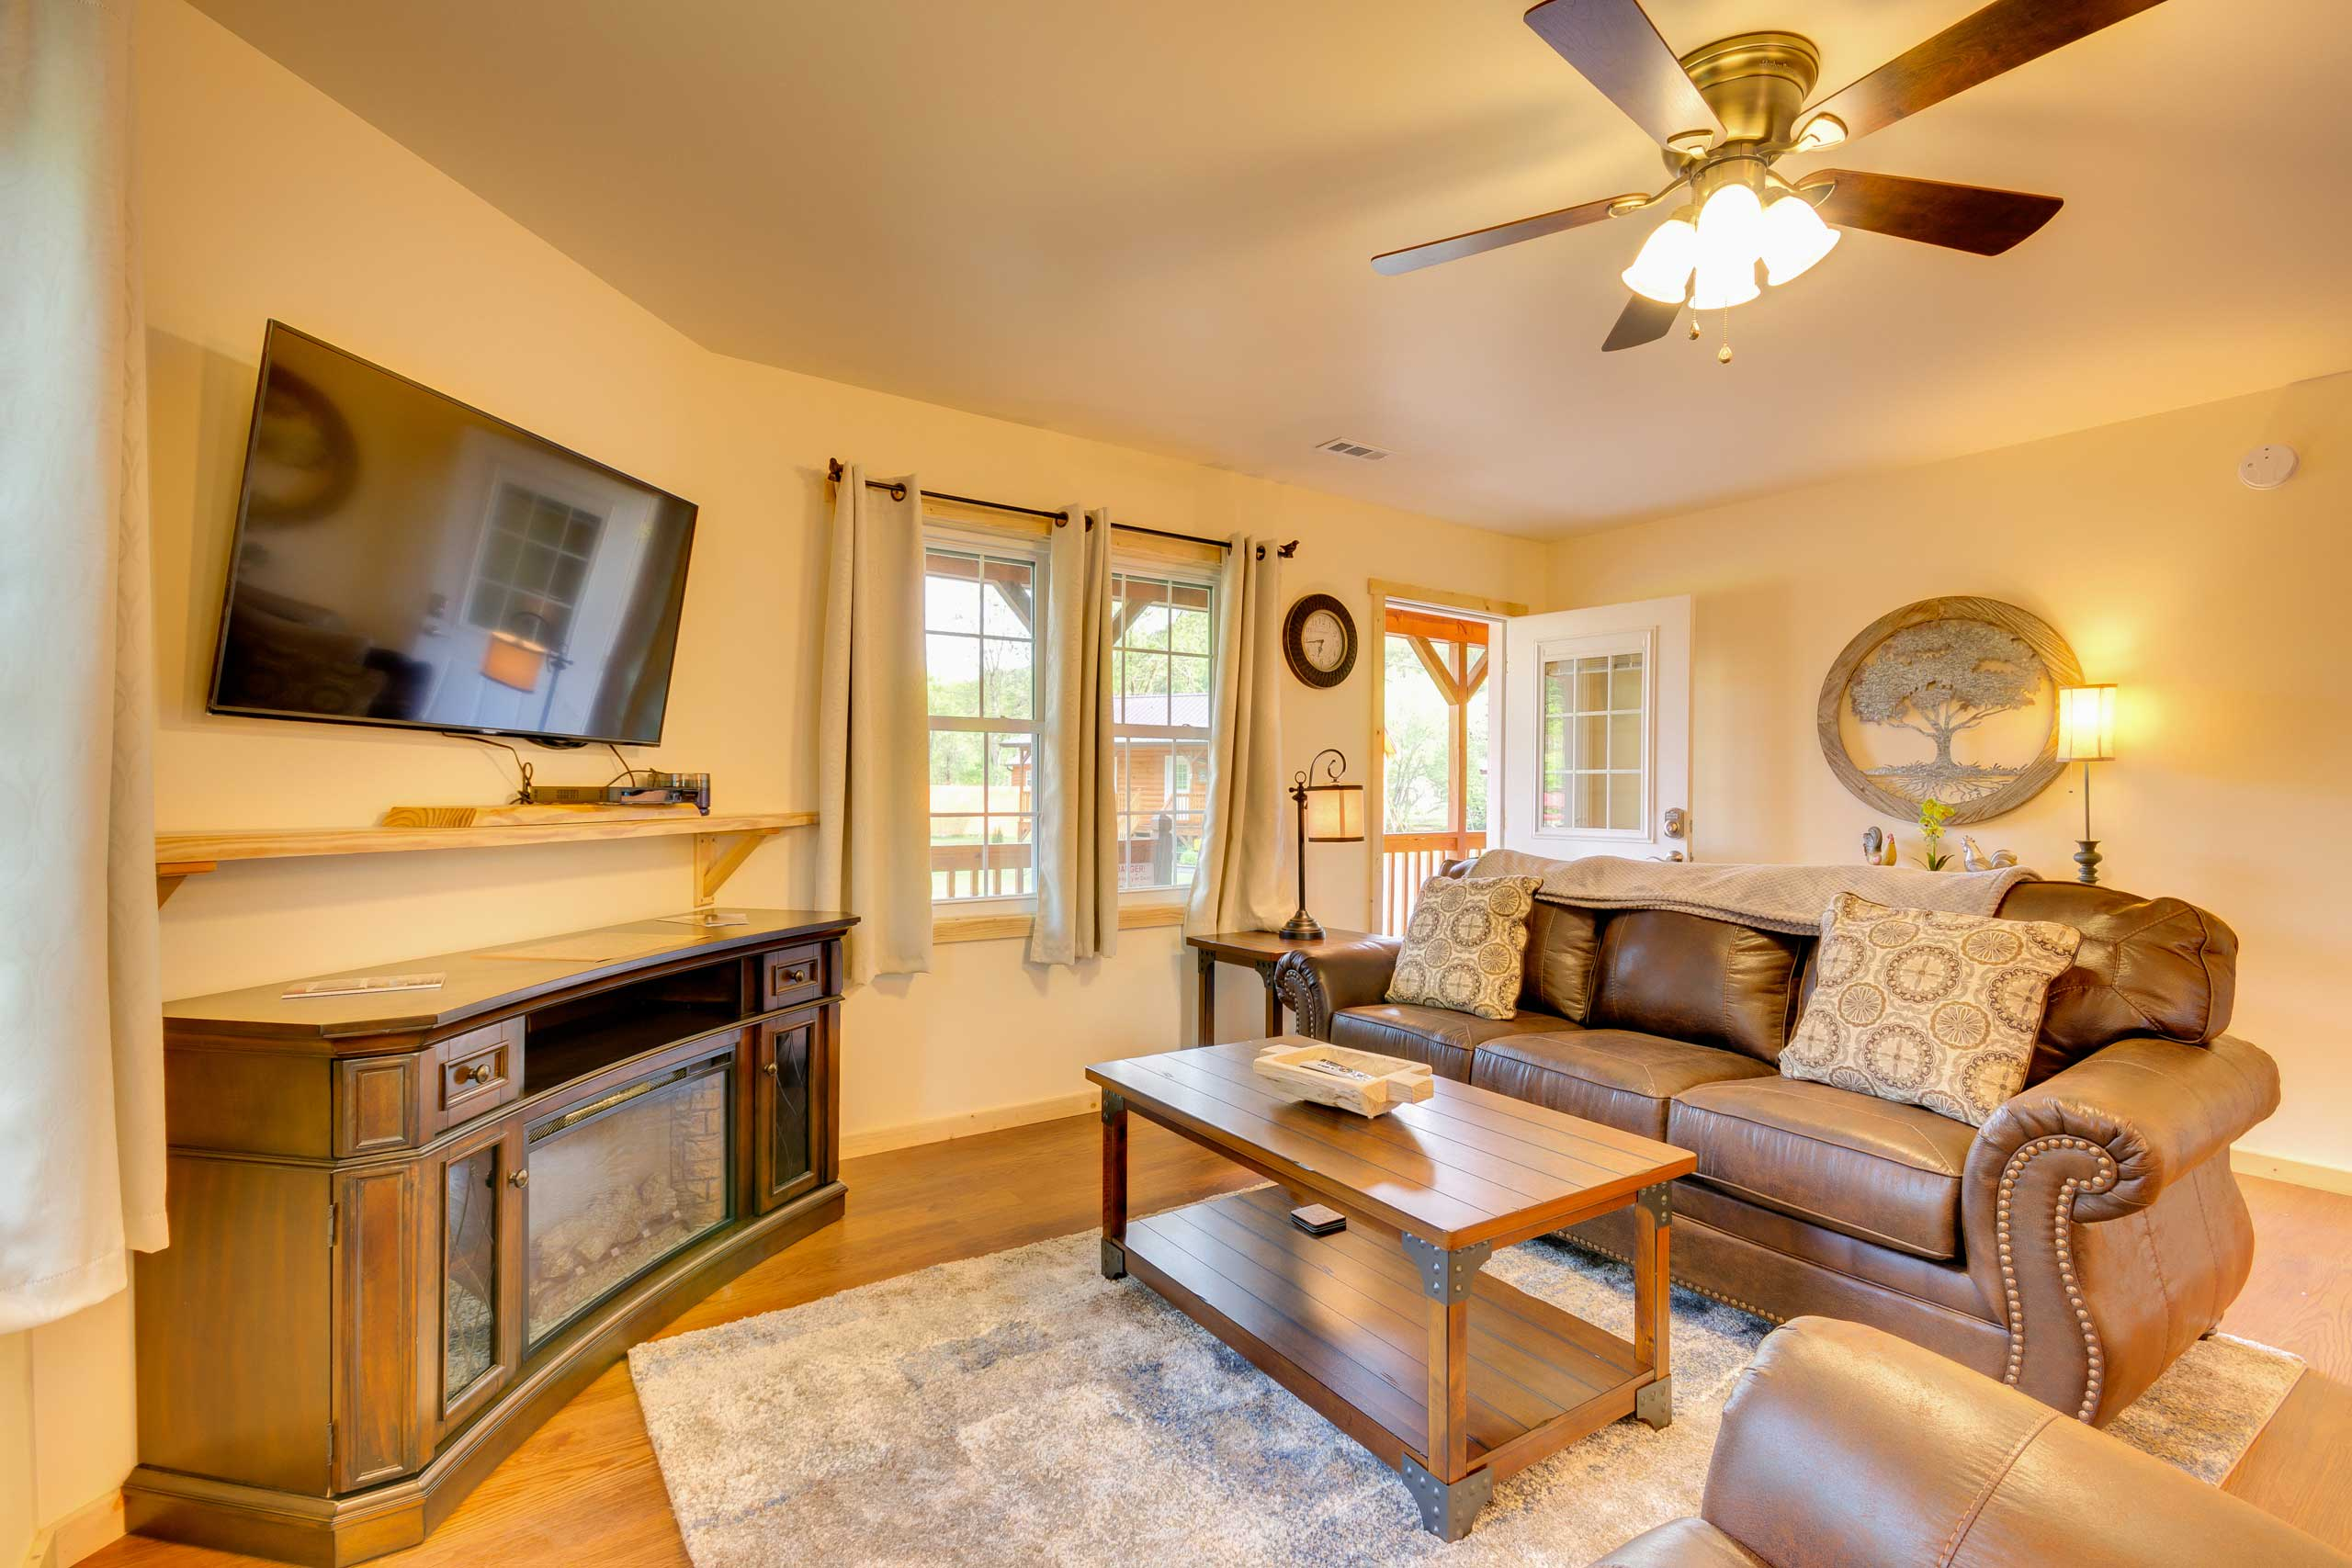 Enjoy the flat-screen cable TV and electric fireplace while you unwind.